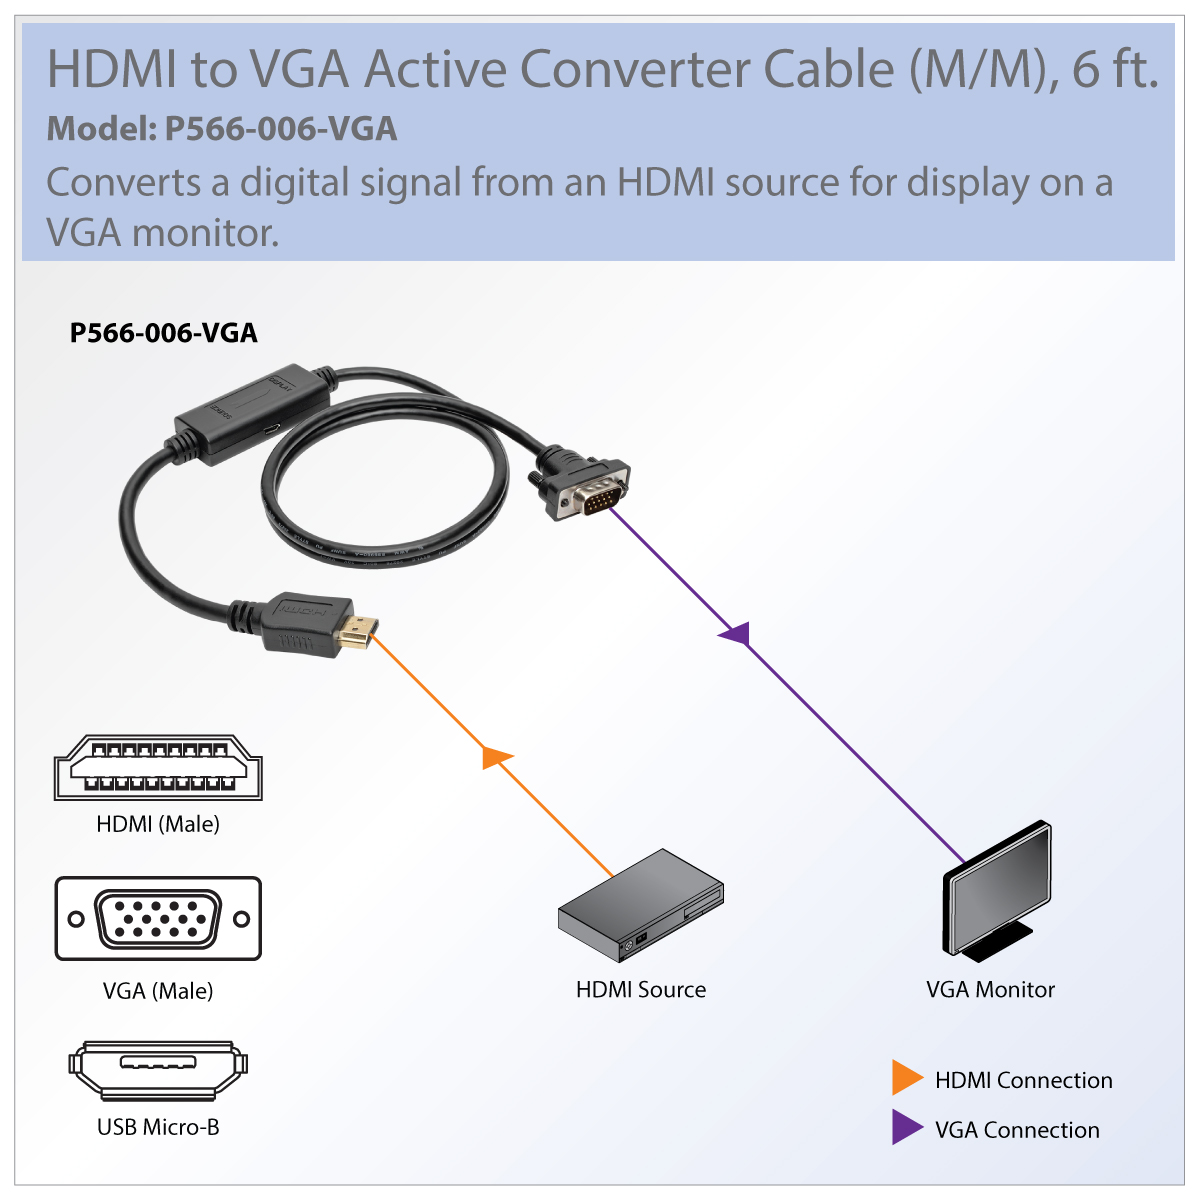 Show HDMI Content on Your Existing VGA Display